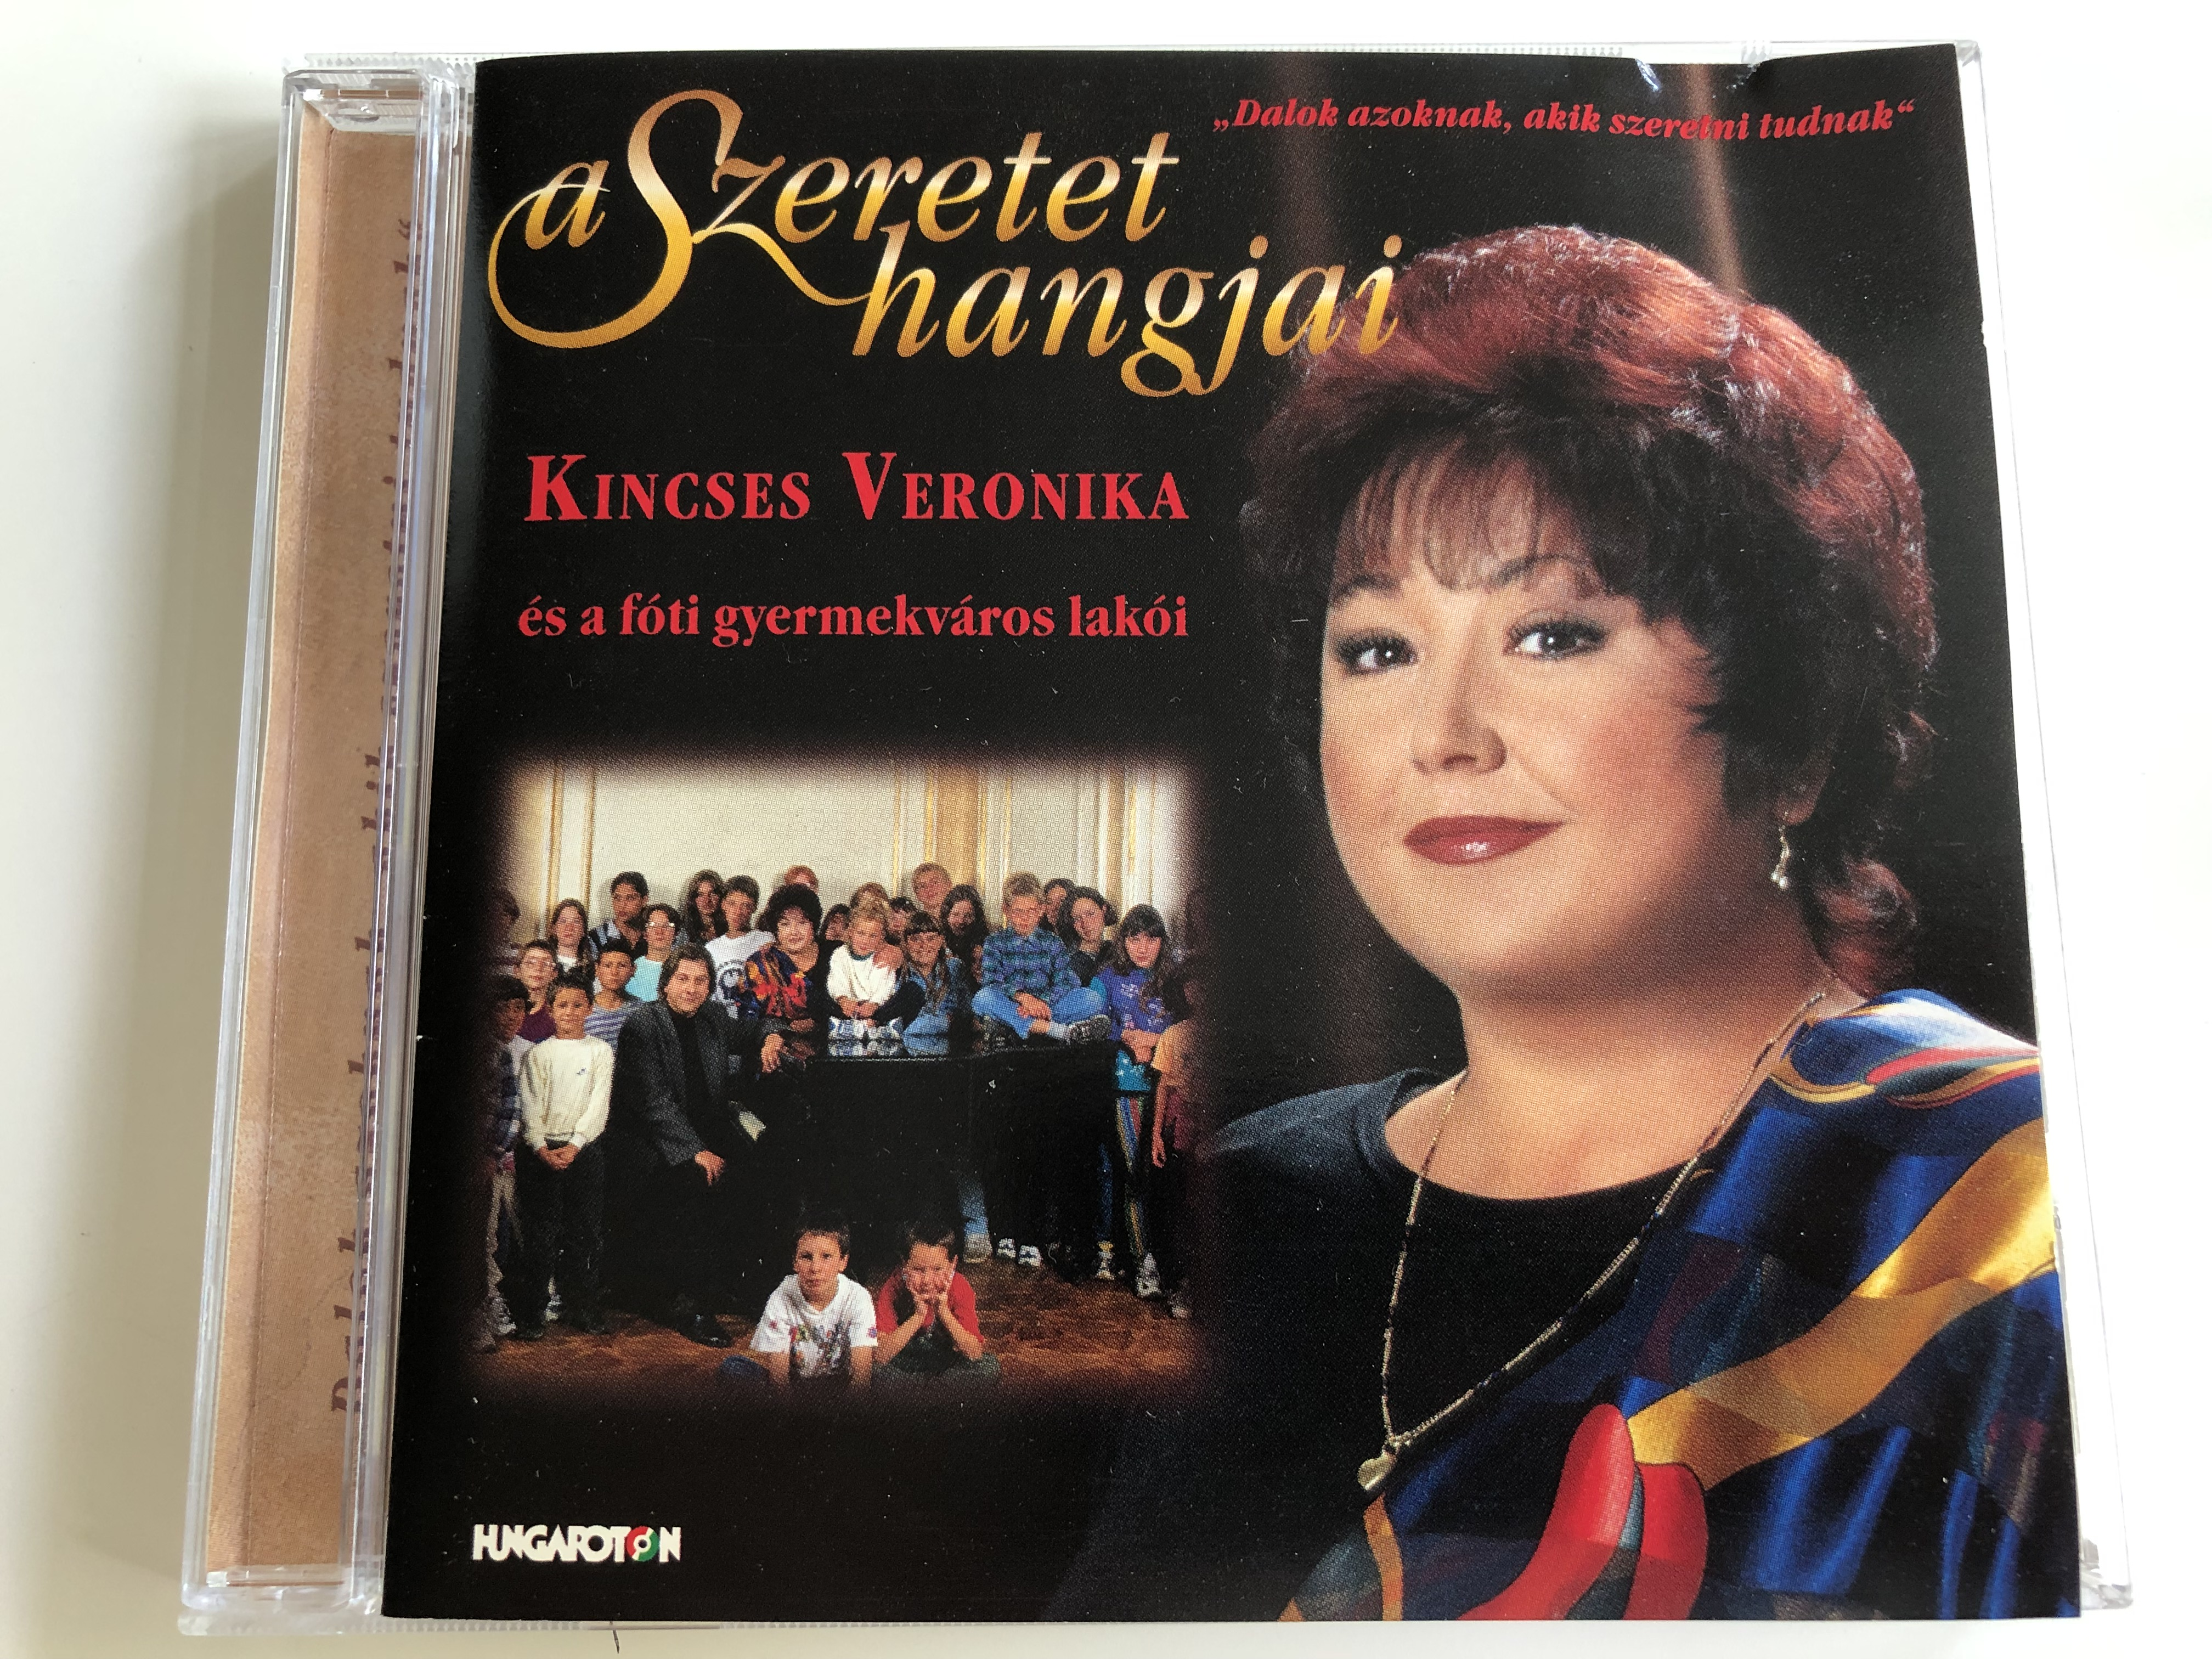 kincses-veronika-s-a-f-ti-gyermekv-ros-lak-i-a-szeretet-hangjai-hungaroton-hcd37938-hungarian-christmas-songs-and-other-popular-songs-1-.jpg